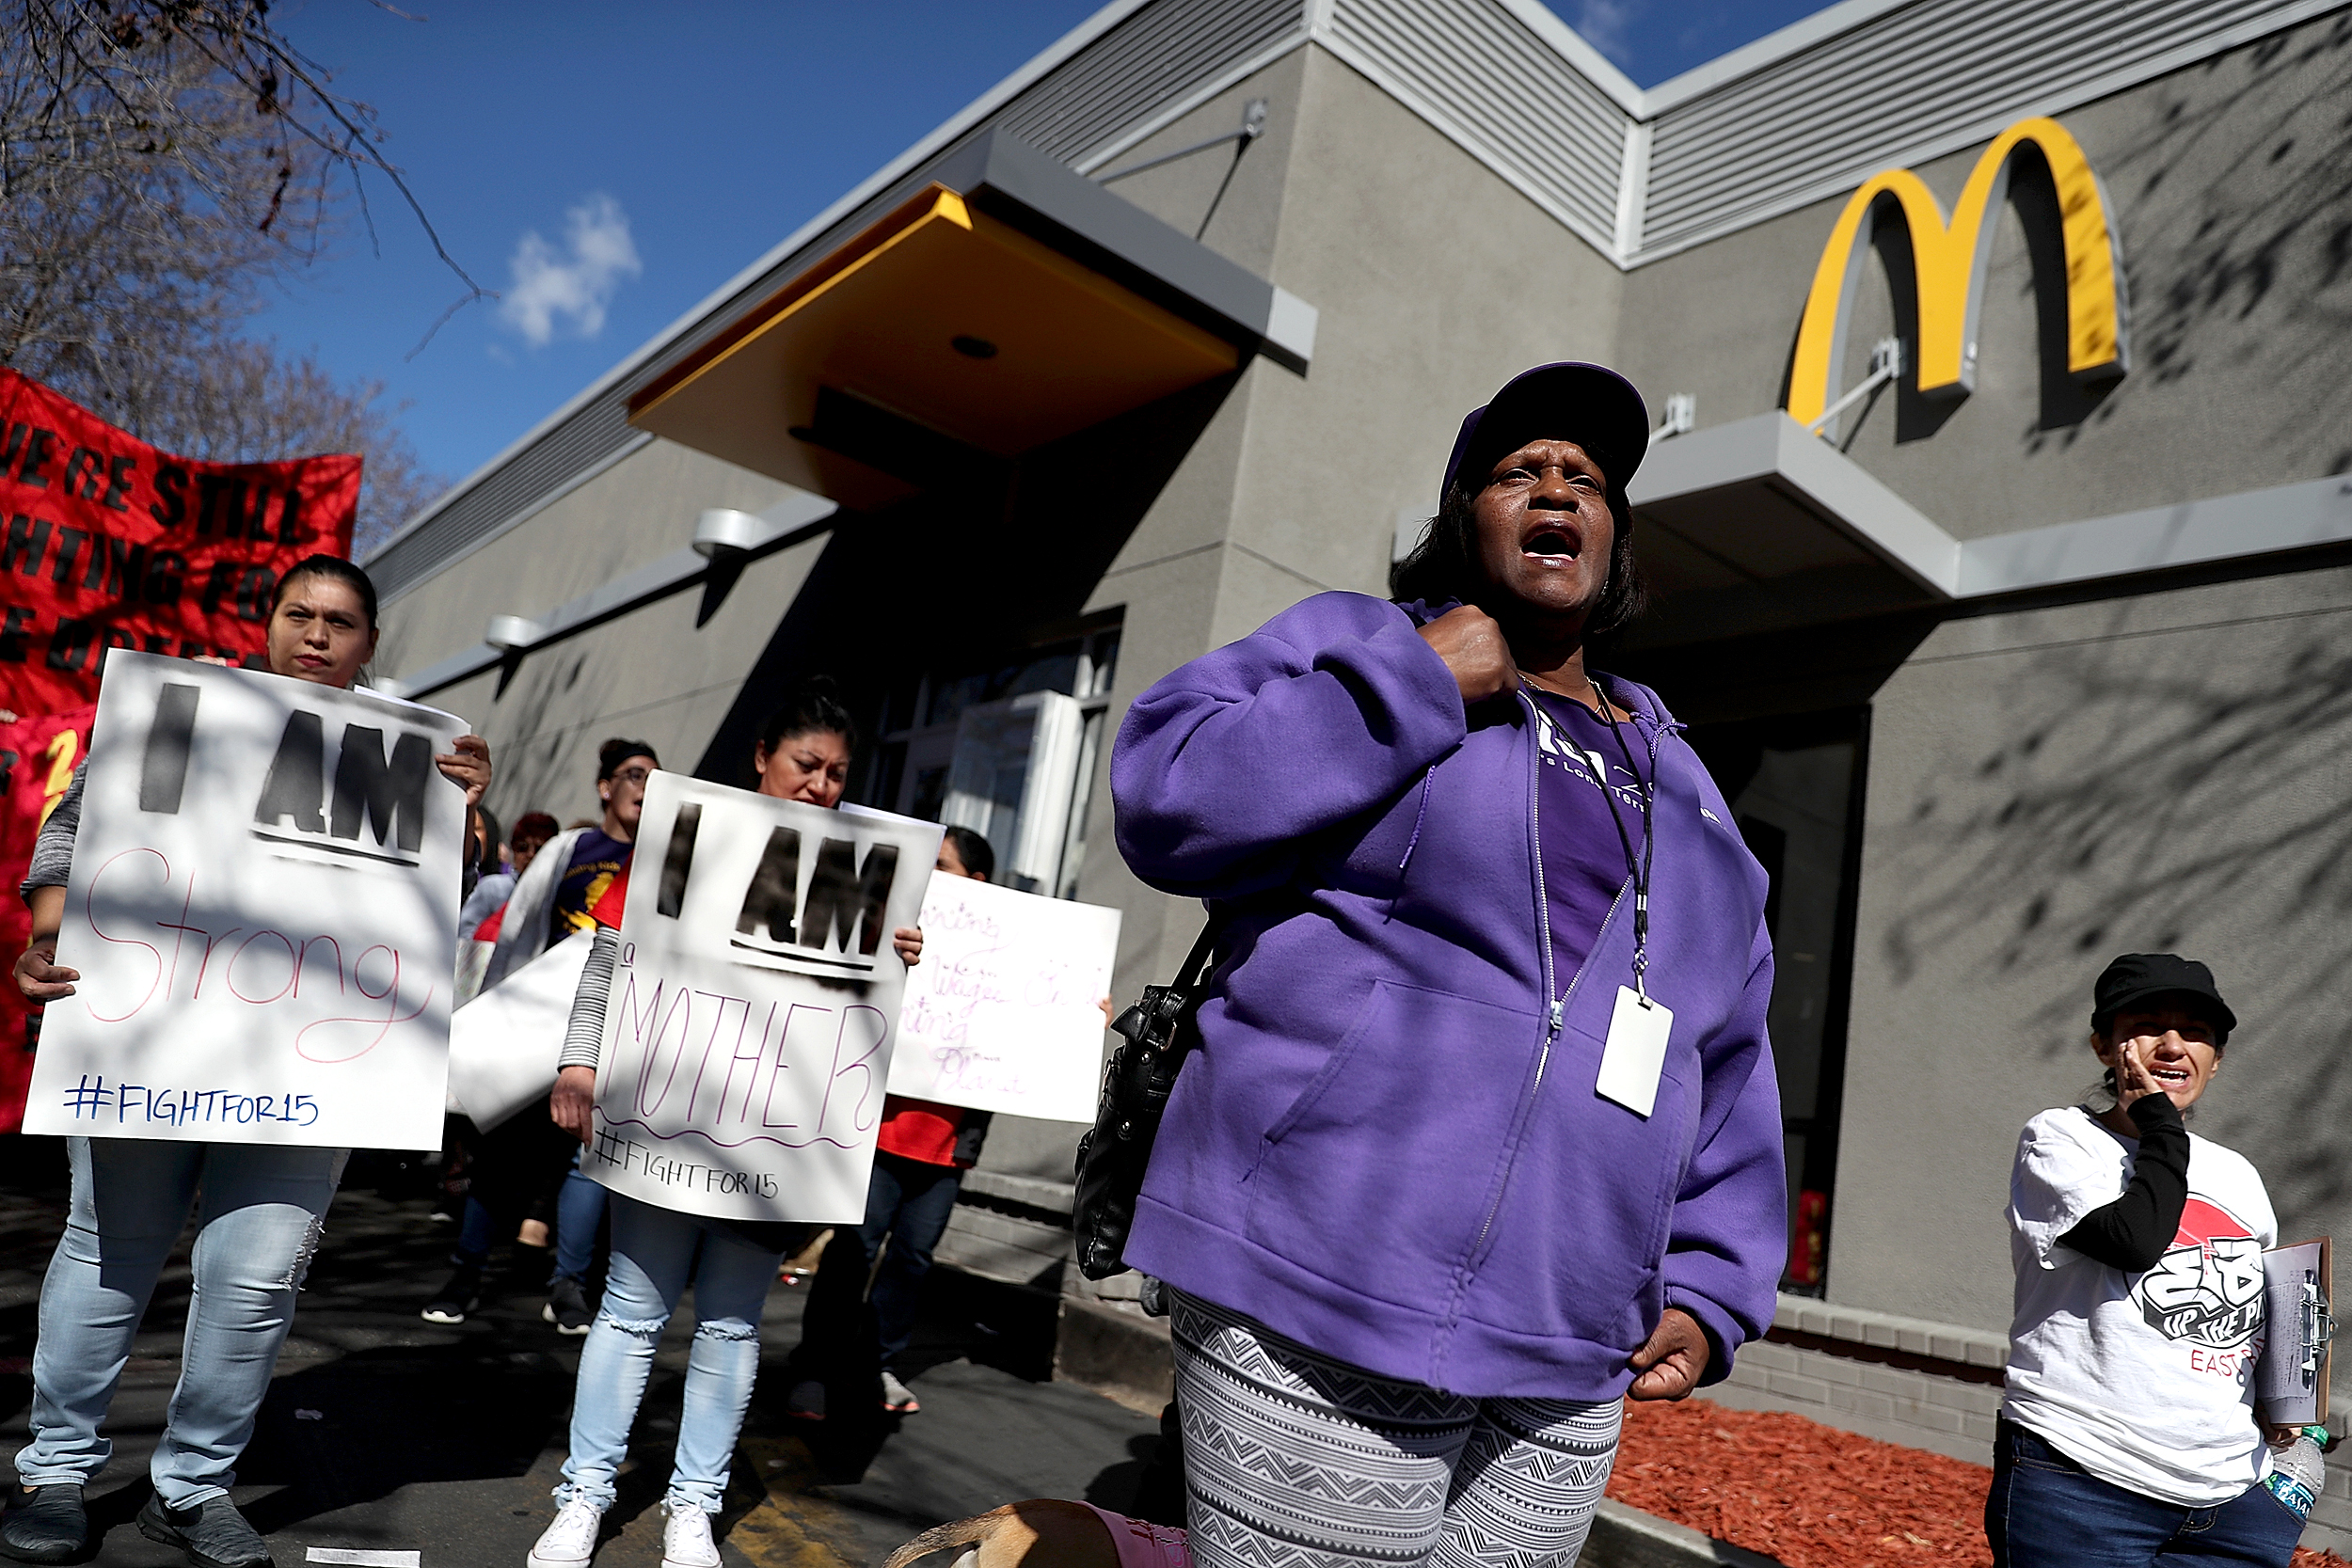 nbcnews.com - McDonald's workers go on strike over sexual harassment